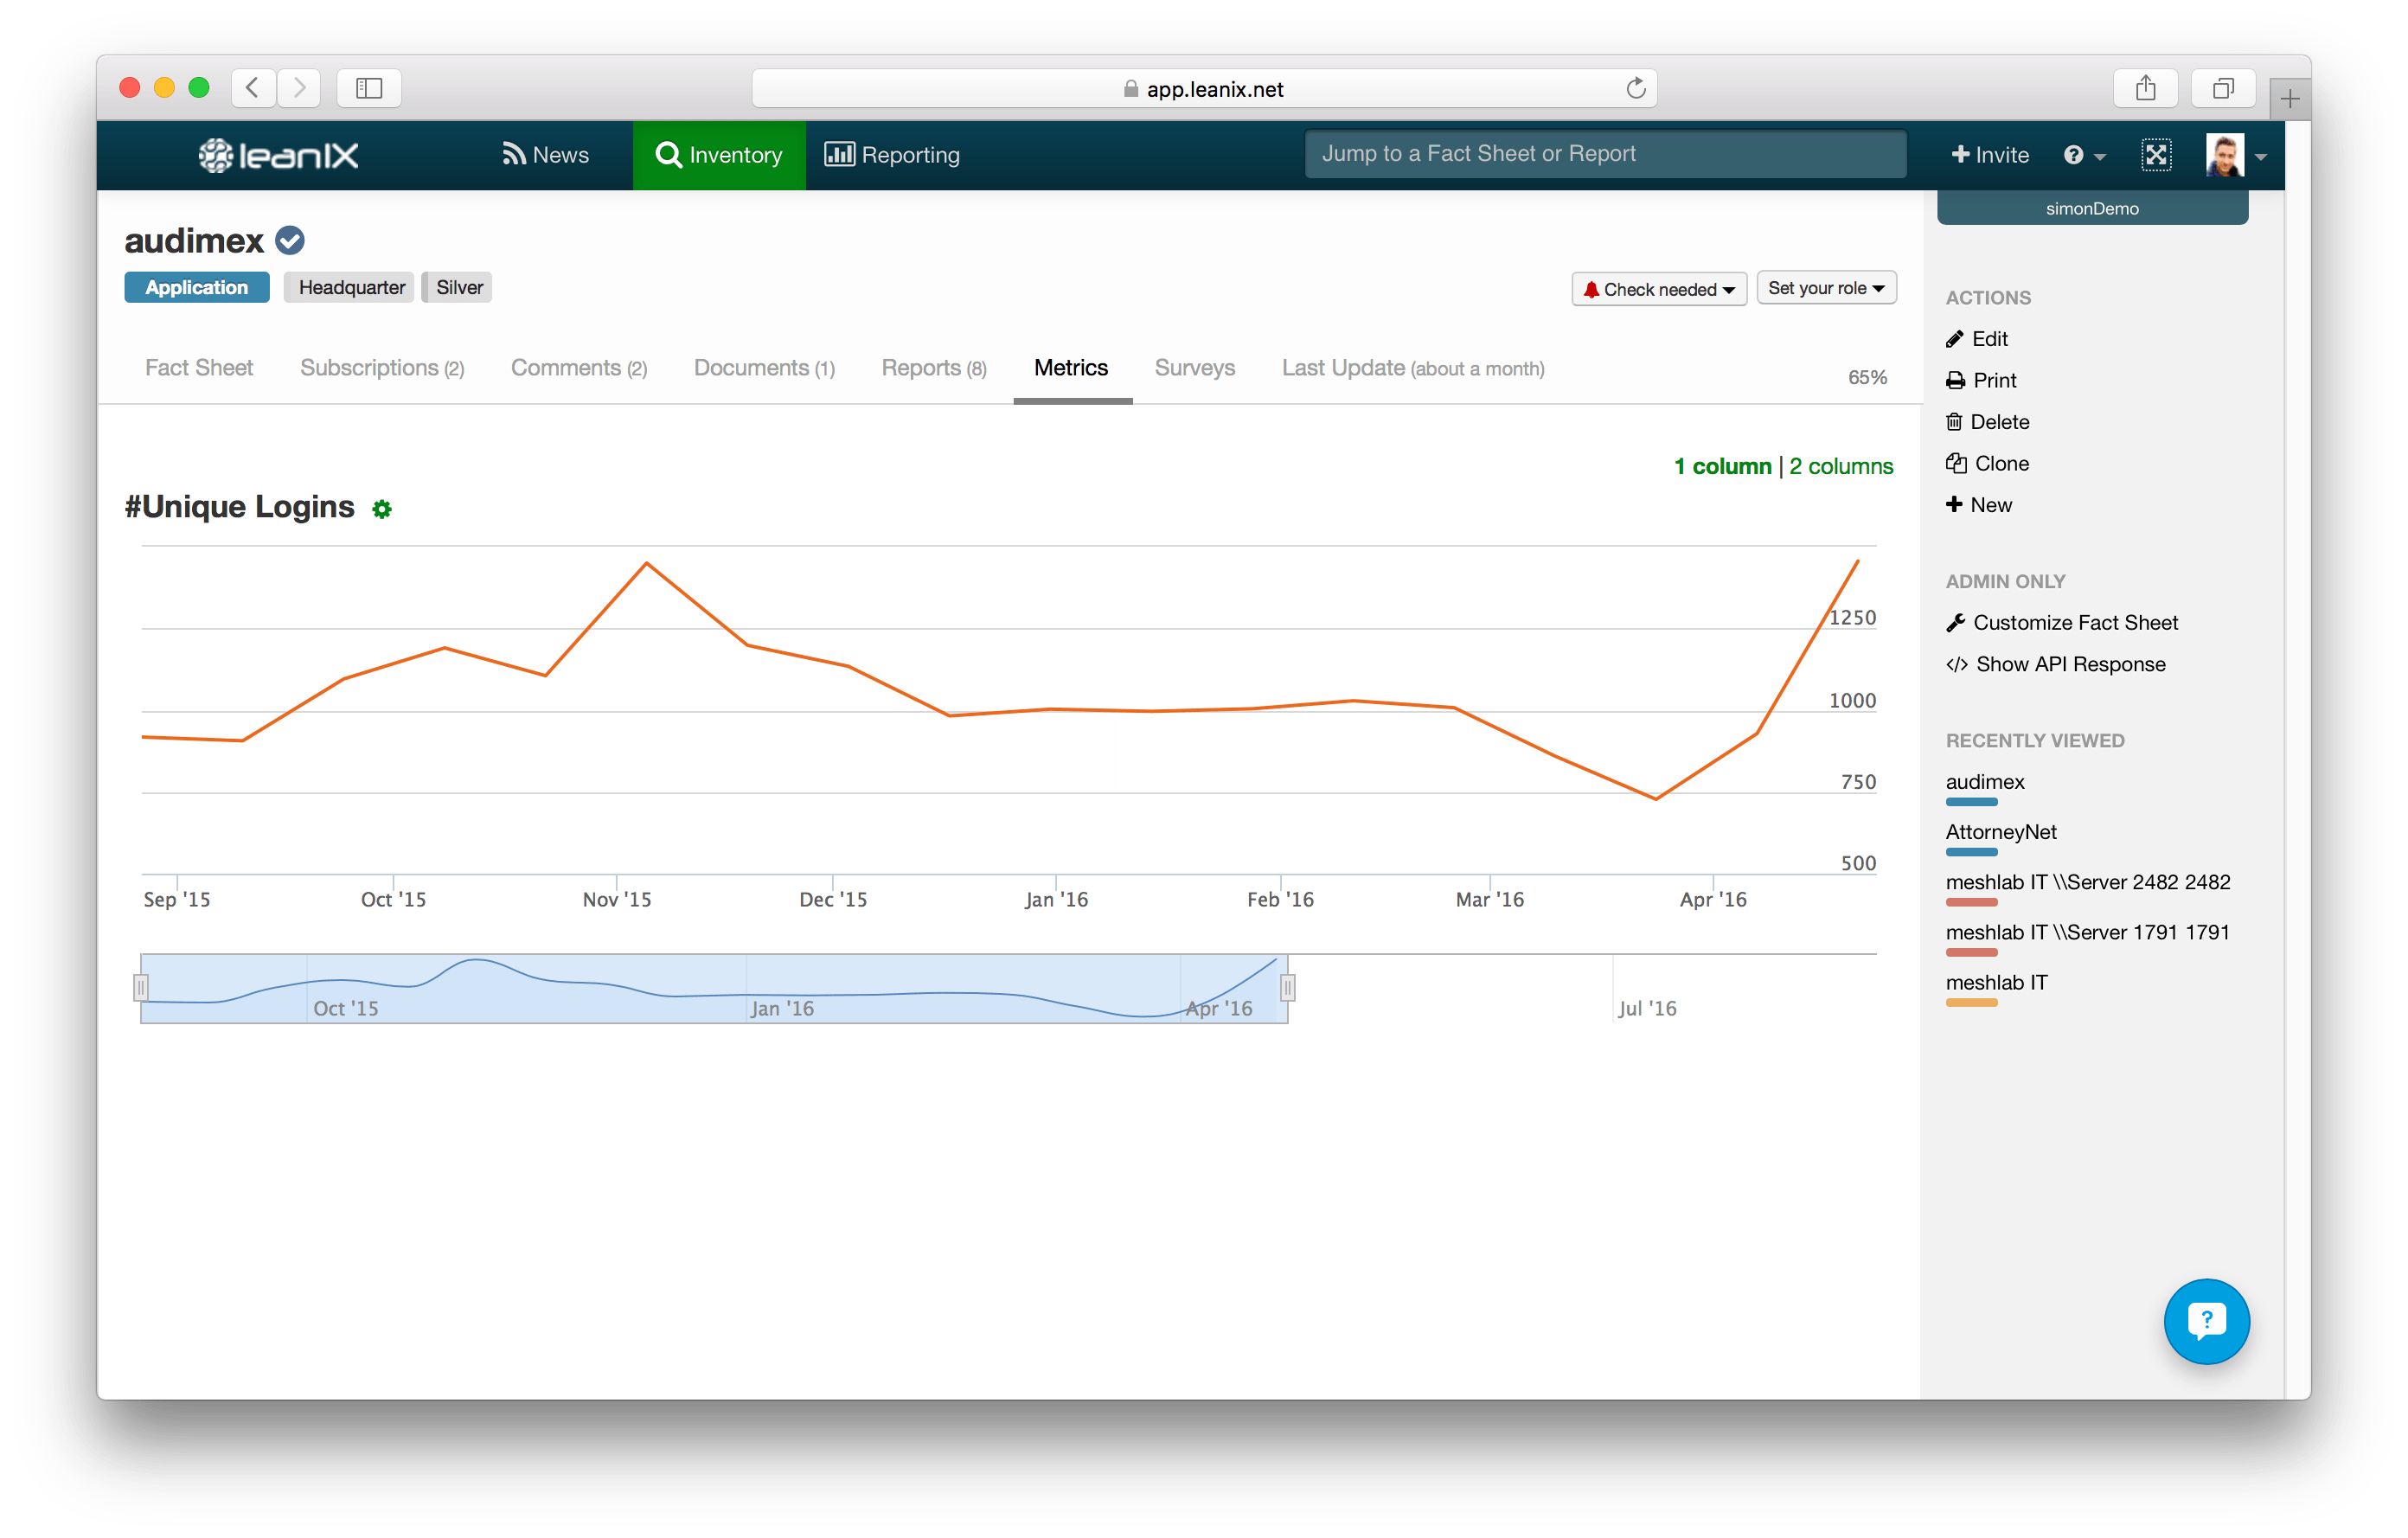 Does usage of an application increase after rolling out new features?